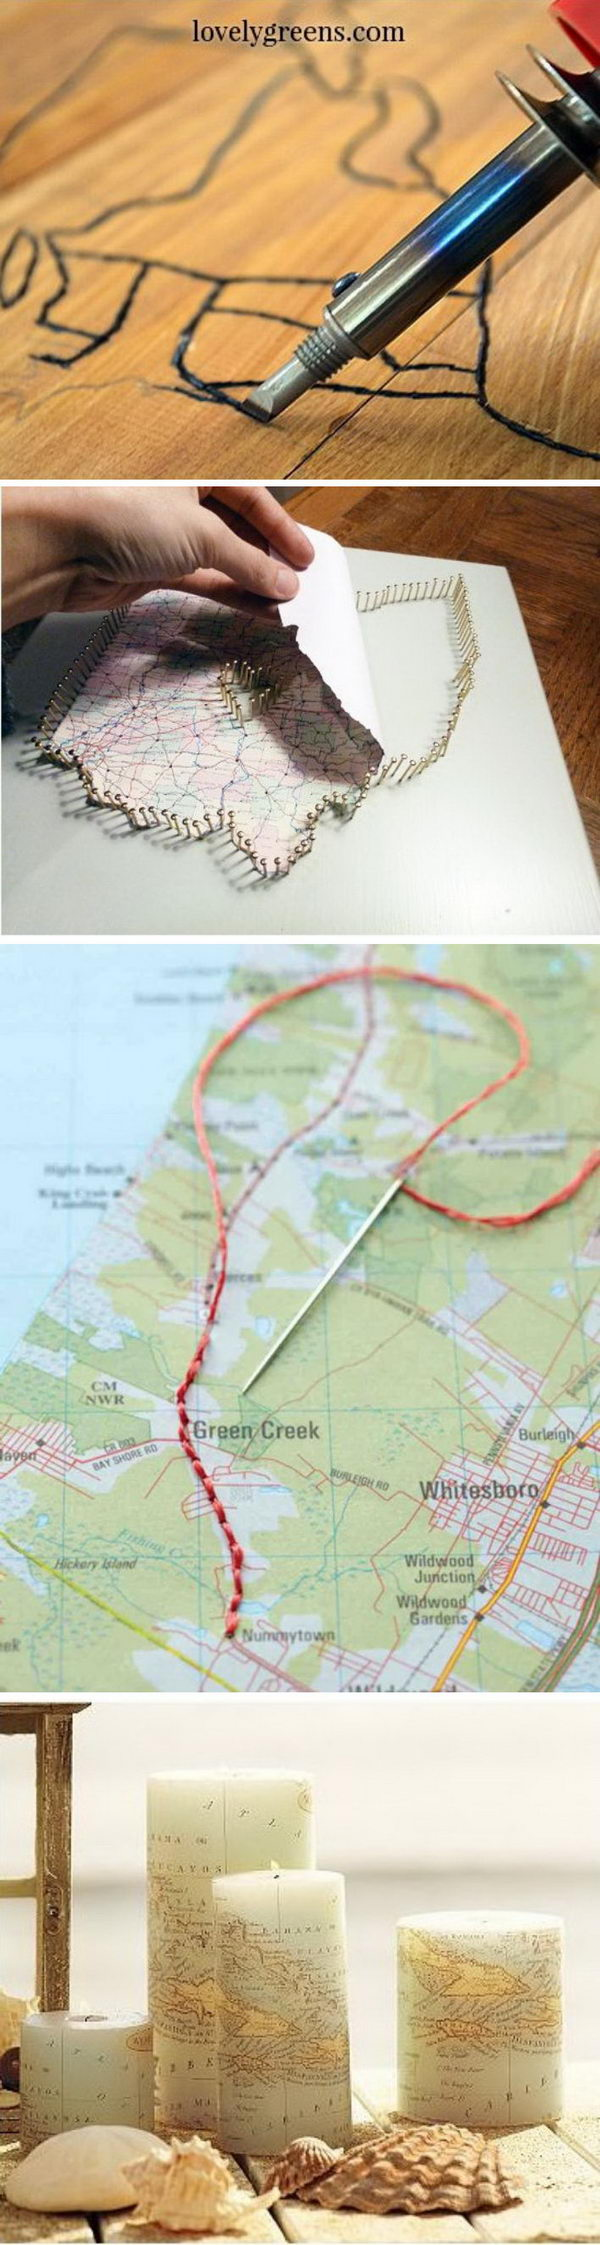 Travel Map Themed DIY Projects 20 Travel